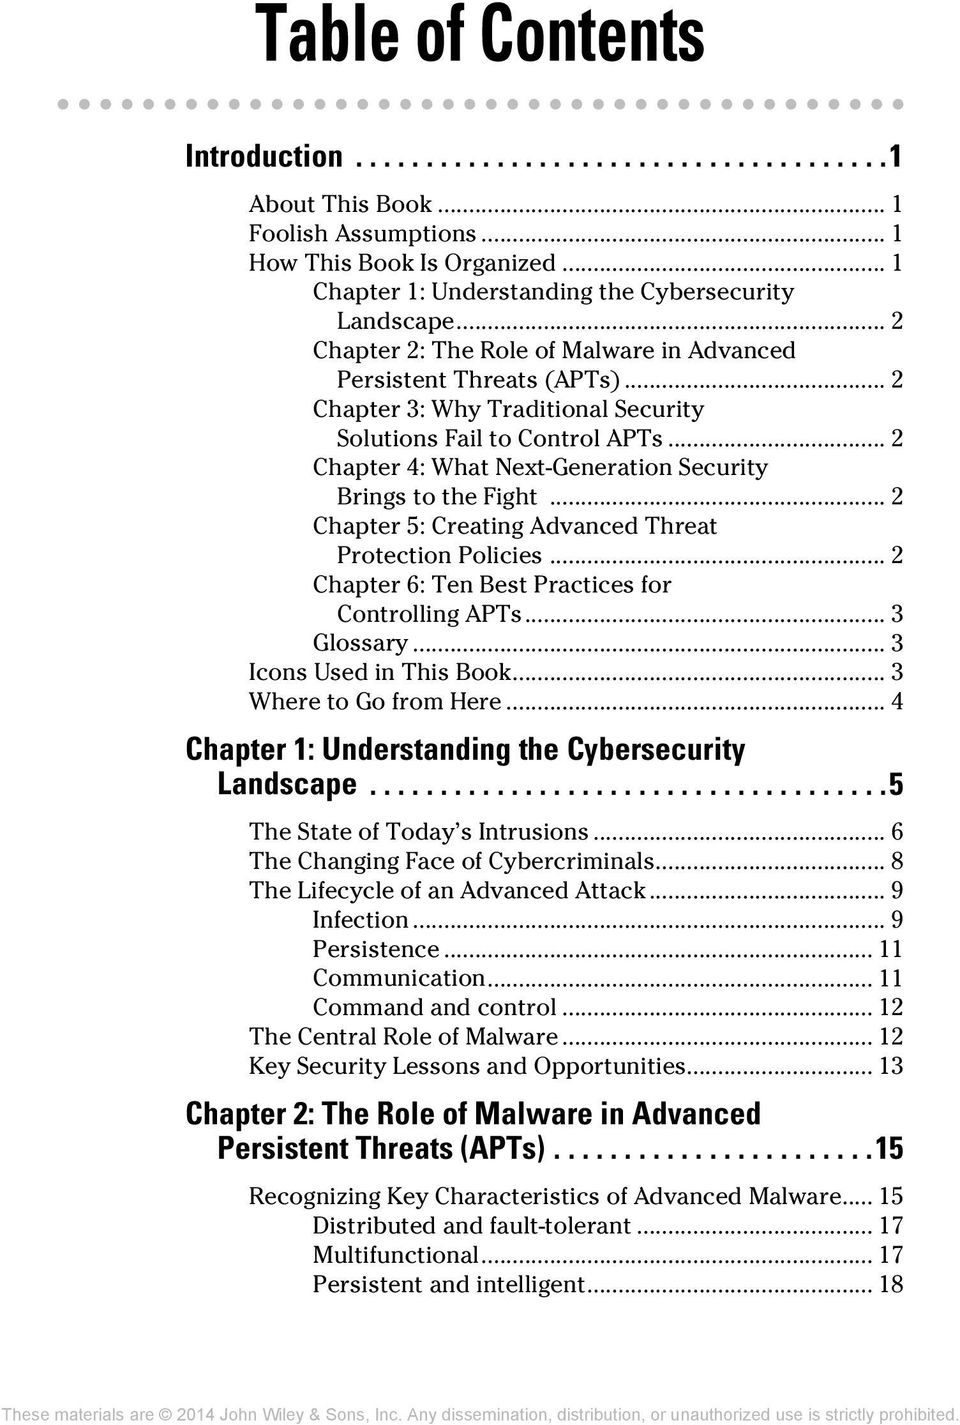 .. 2 Chapter 4: What Next-Generation Security Brings to the Fight... 2 Chapter 5: Creating Advanced Threat Protection Policies... 2 Chapter 6: Ten Best Practices for Controlling APTs... 3 Glossary.